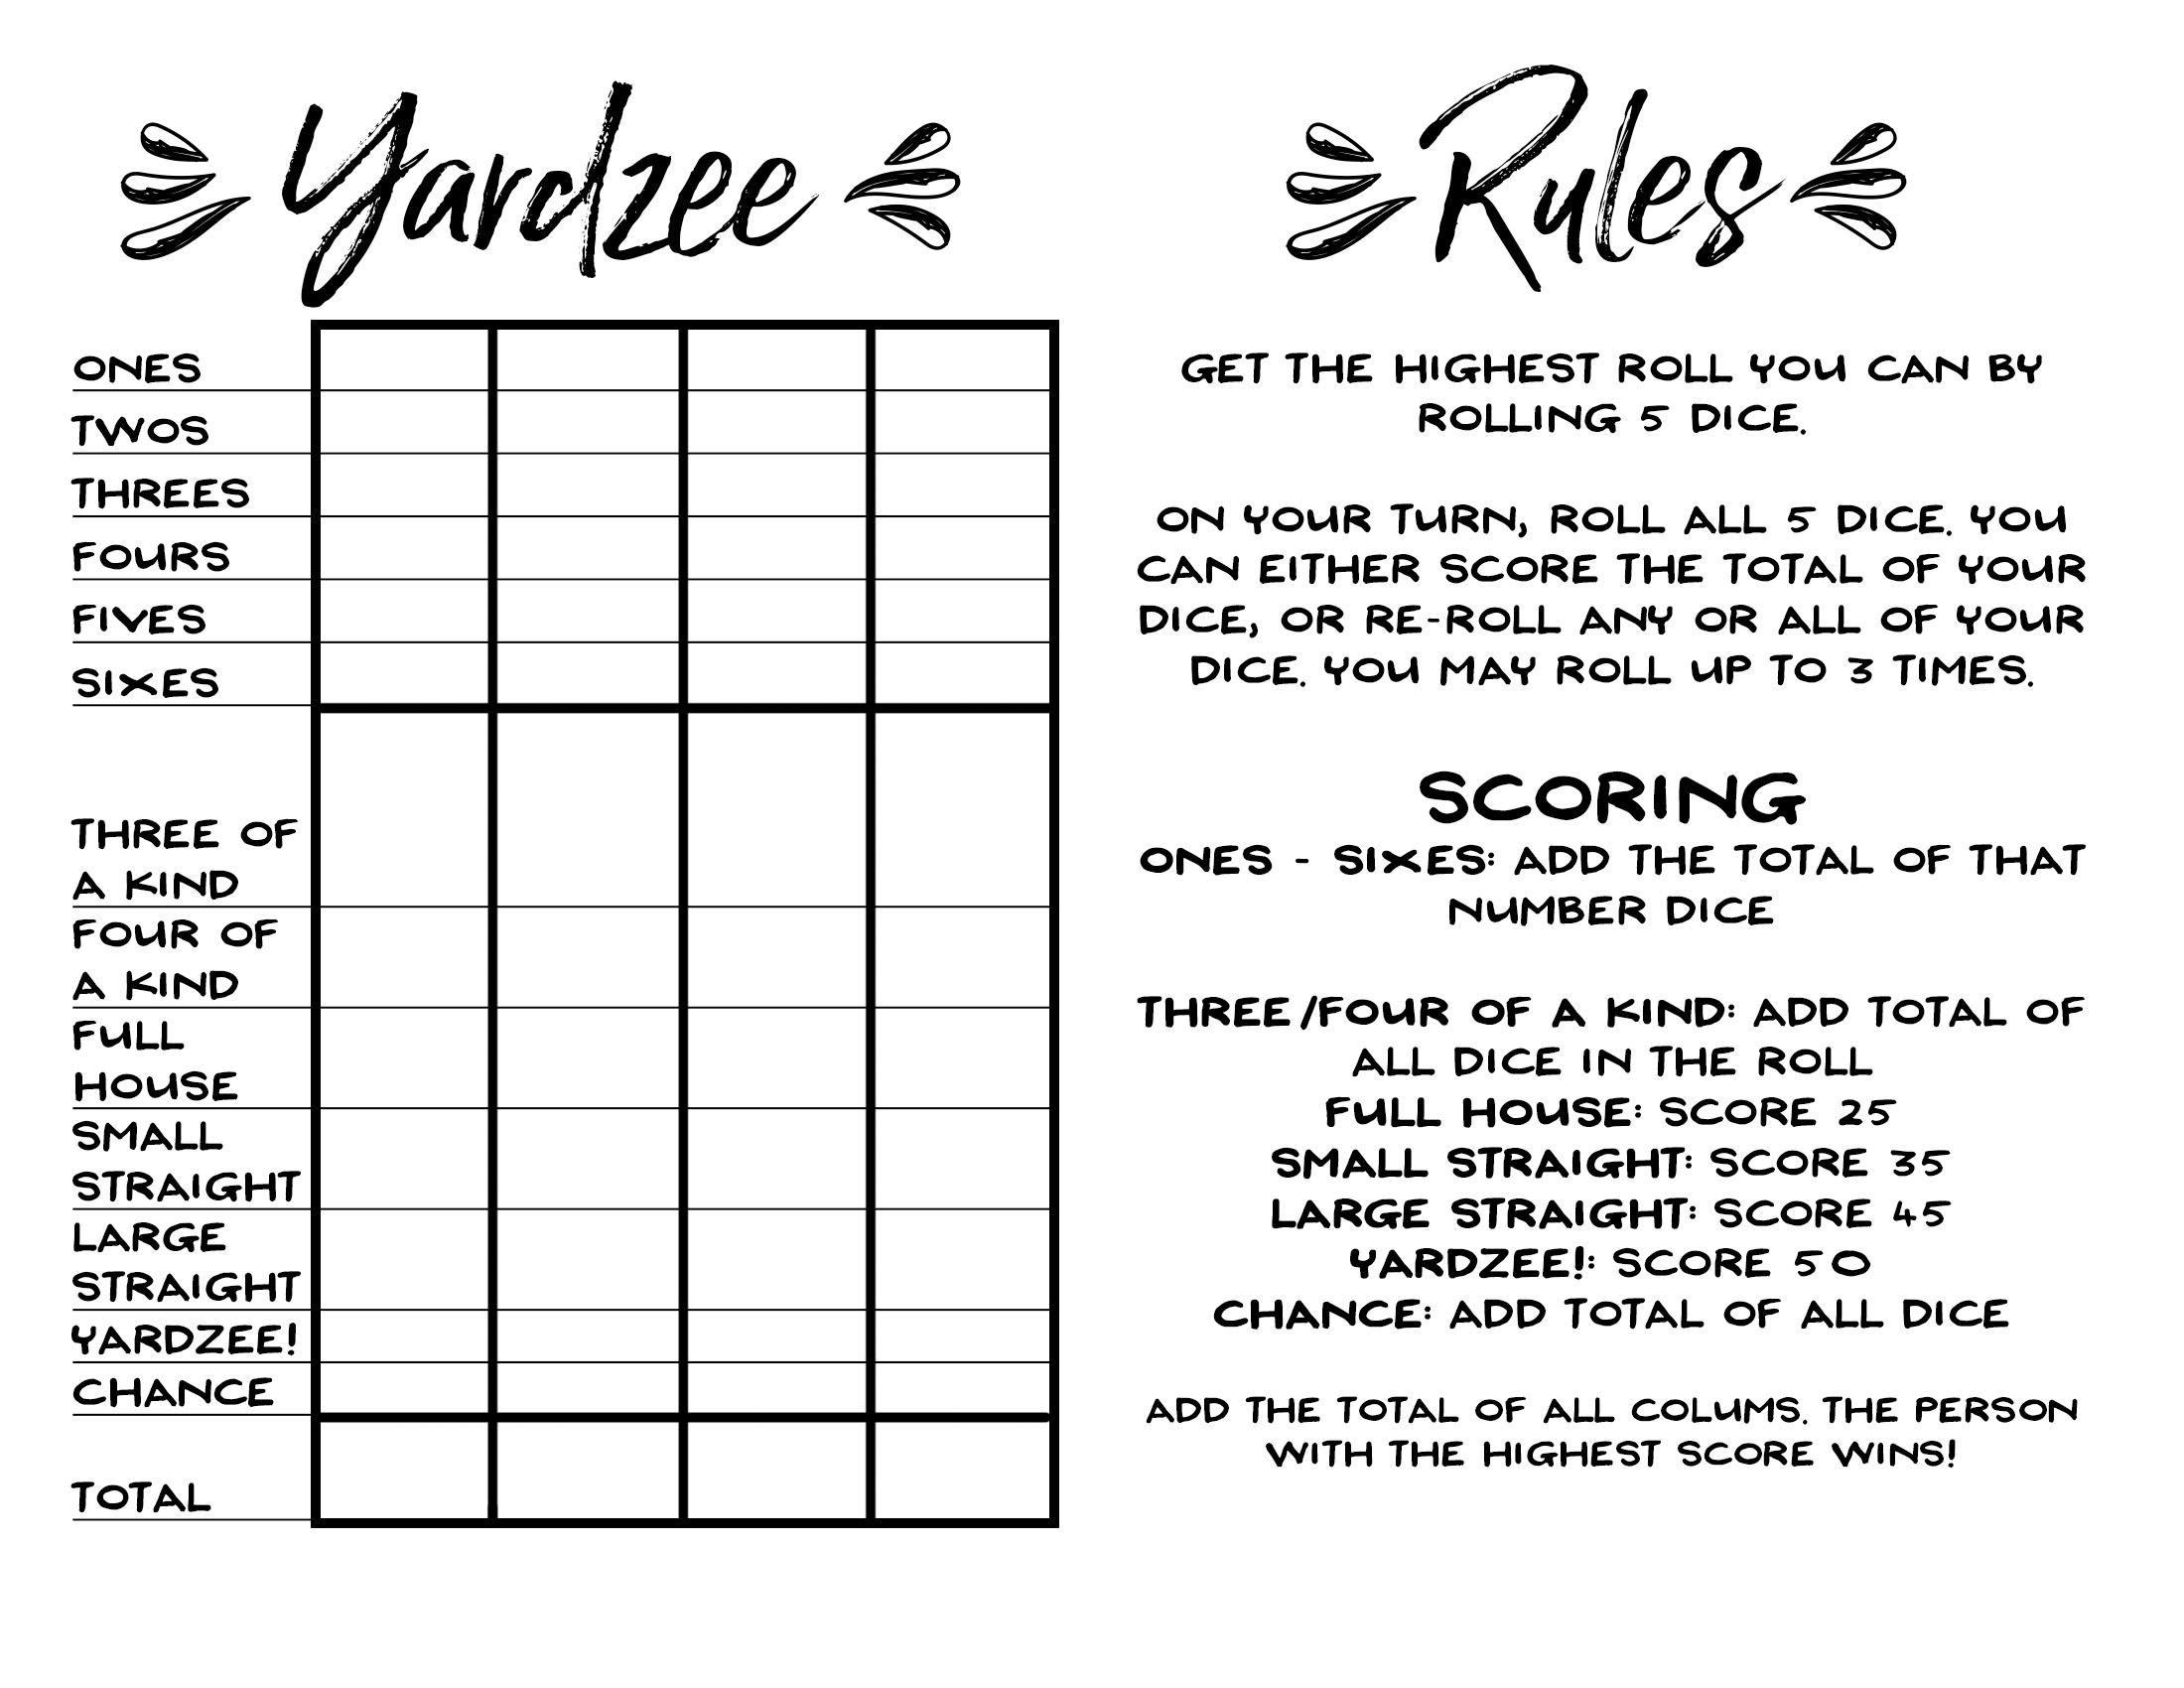 picture regarding Yahtzee Rules Printable named How in the direction of Crank out Big Back garden Cube + Absolutely free Printable Yardzee Crank out